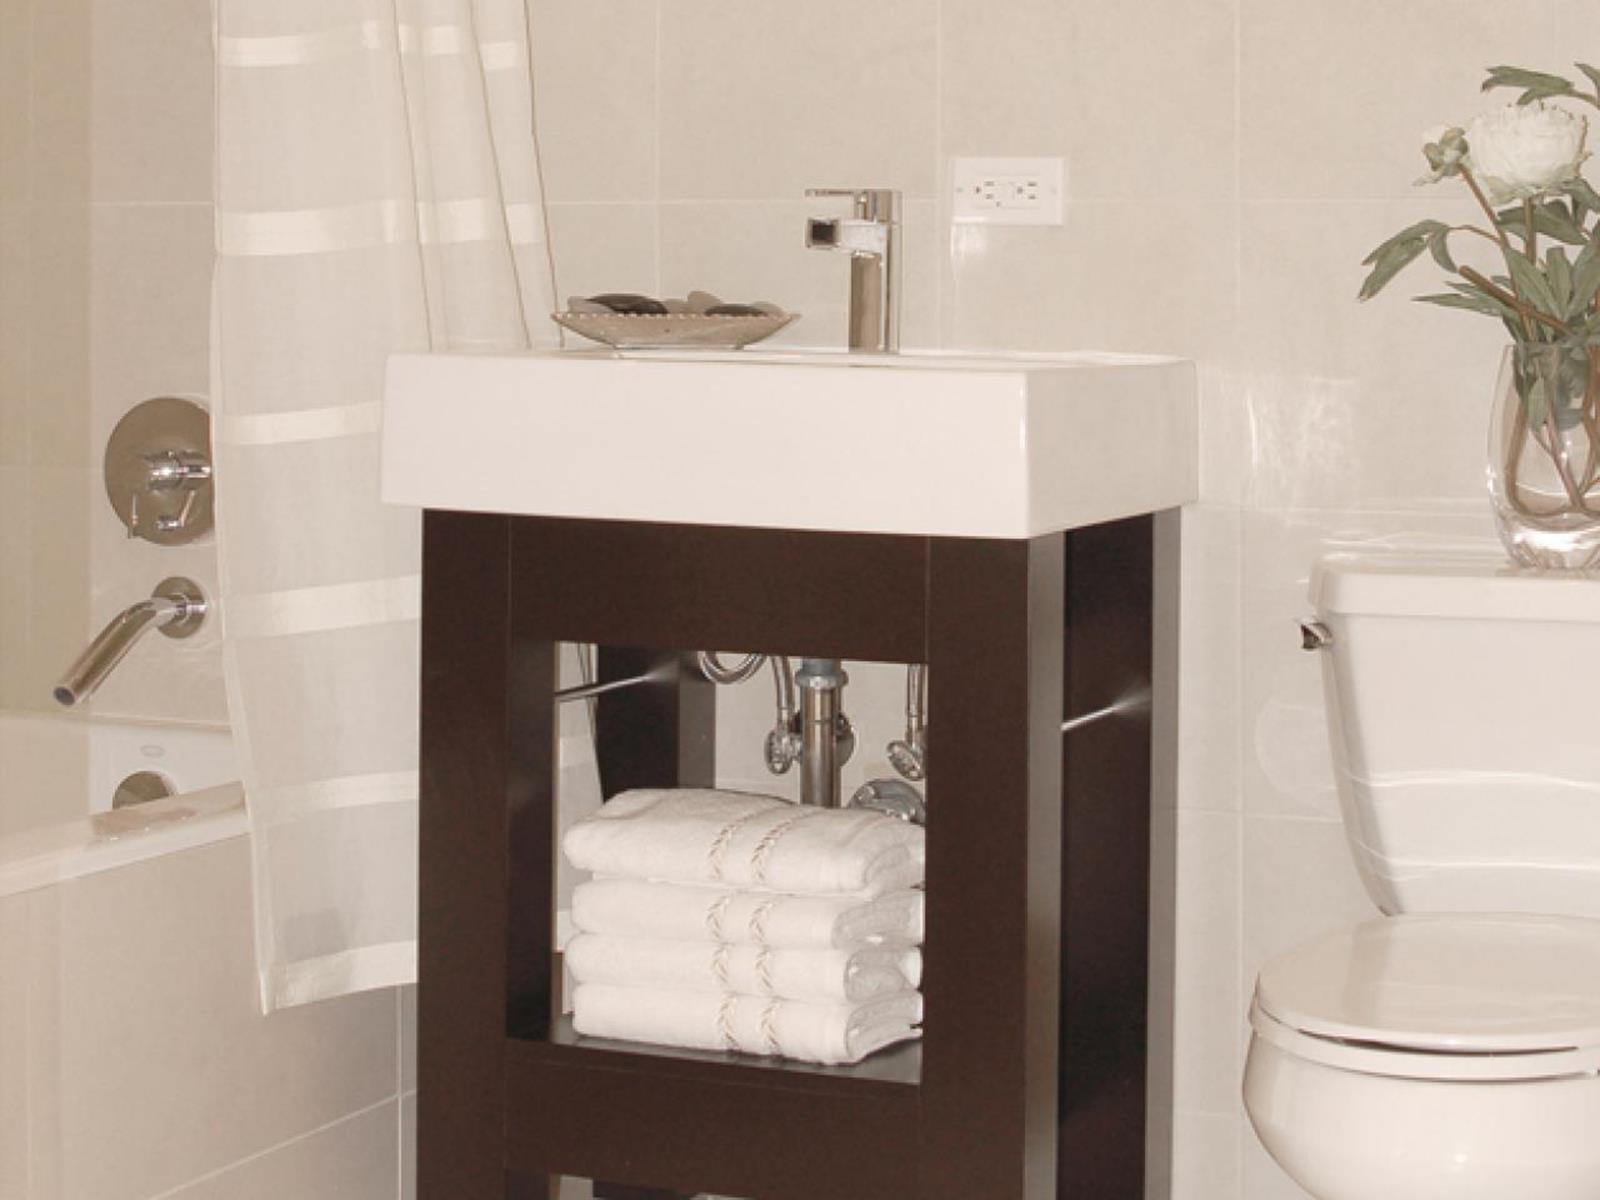 Spa Bathroom Remodel For Small Space 36